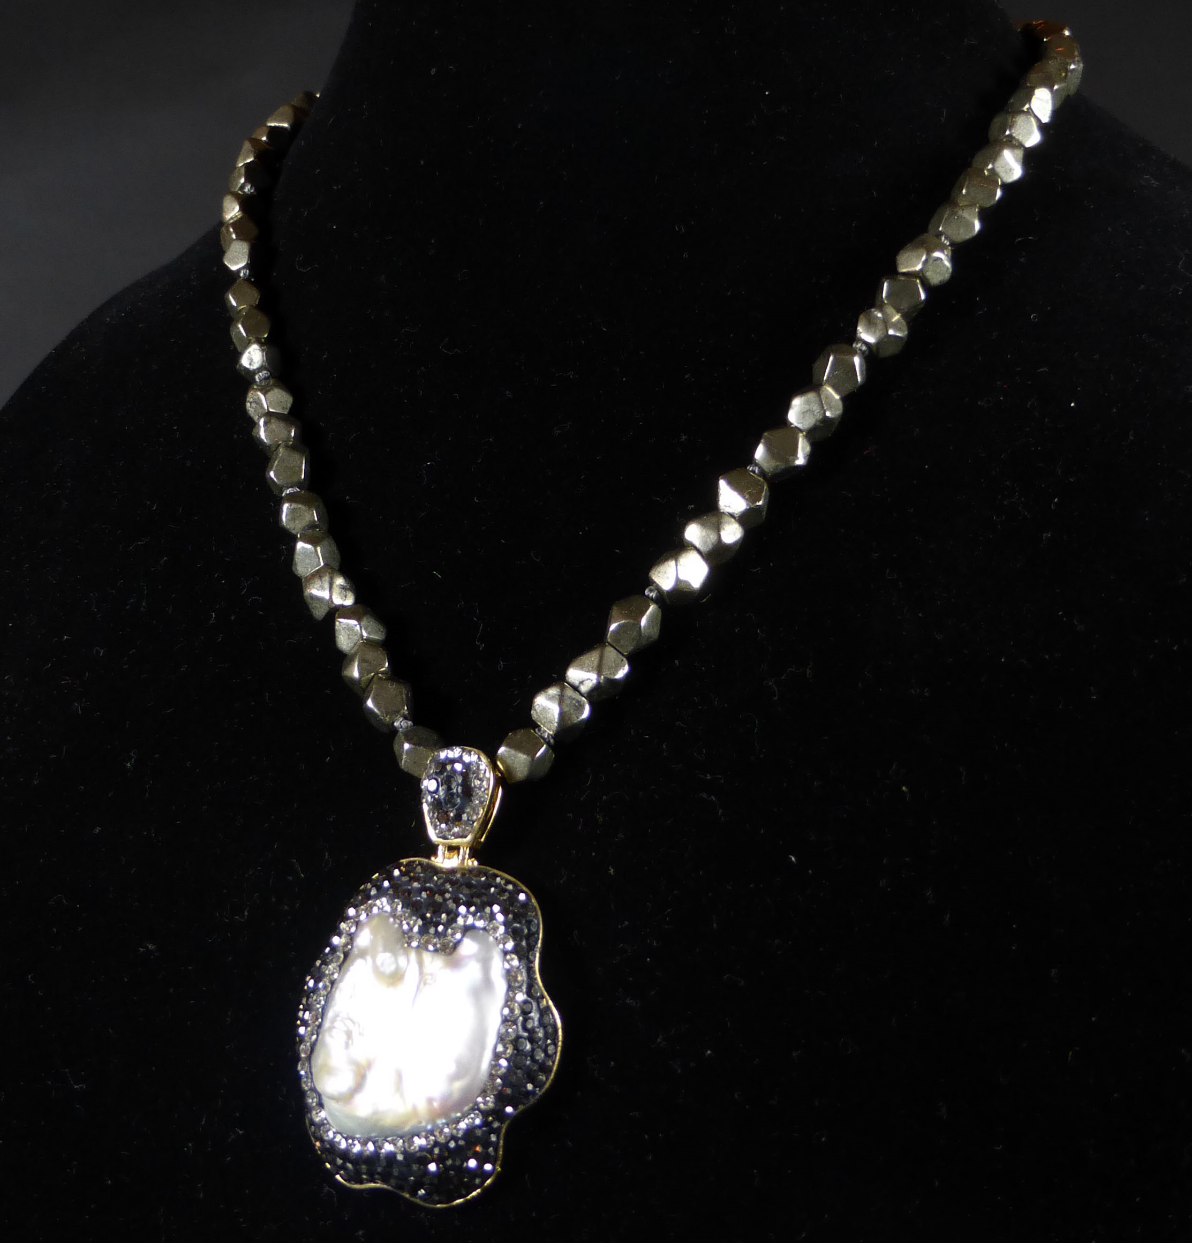 Beautiful pyrite and mother of pearl necklace from Betty Badd Couture